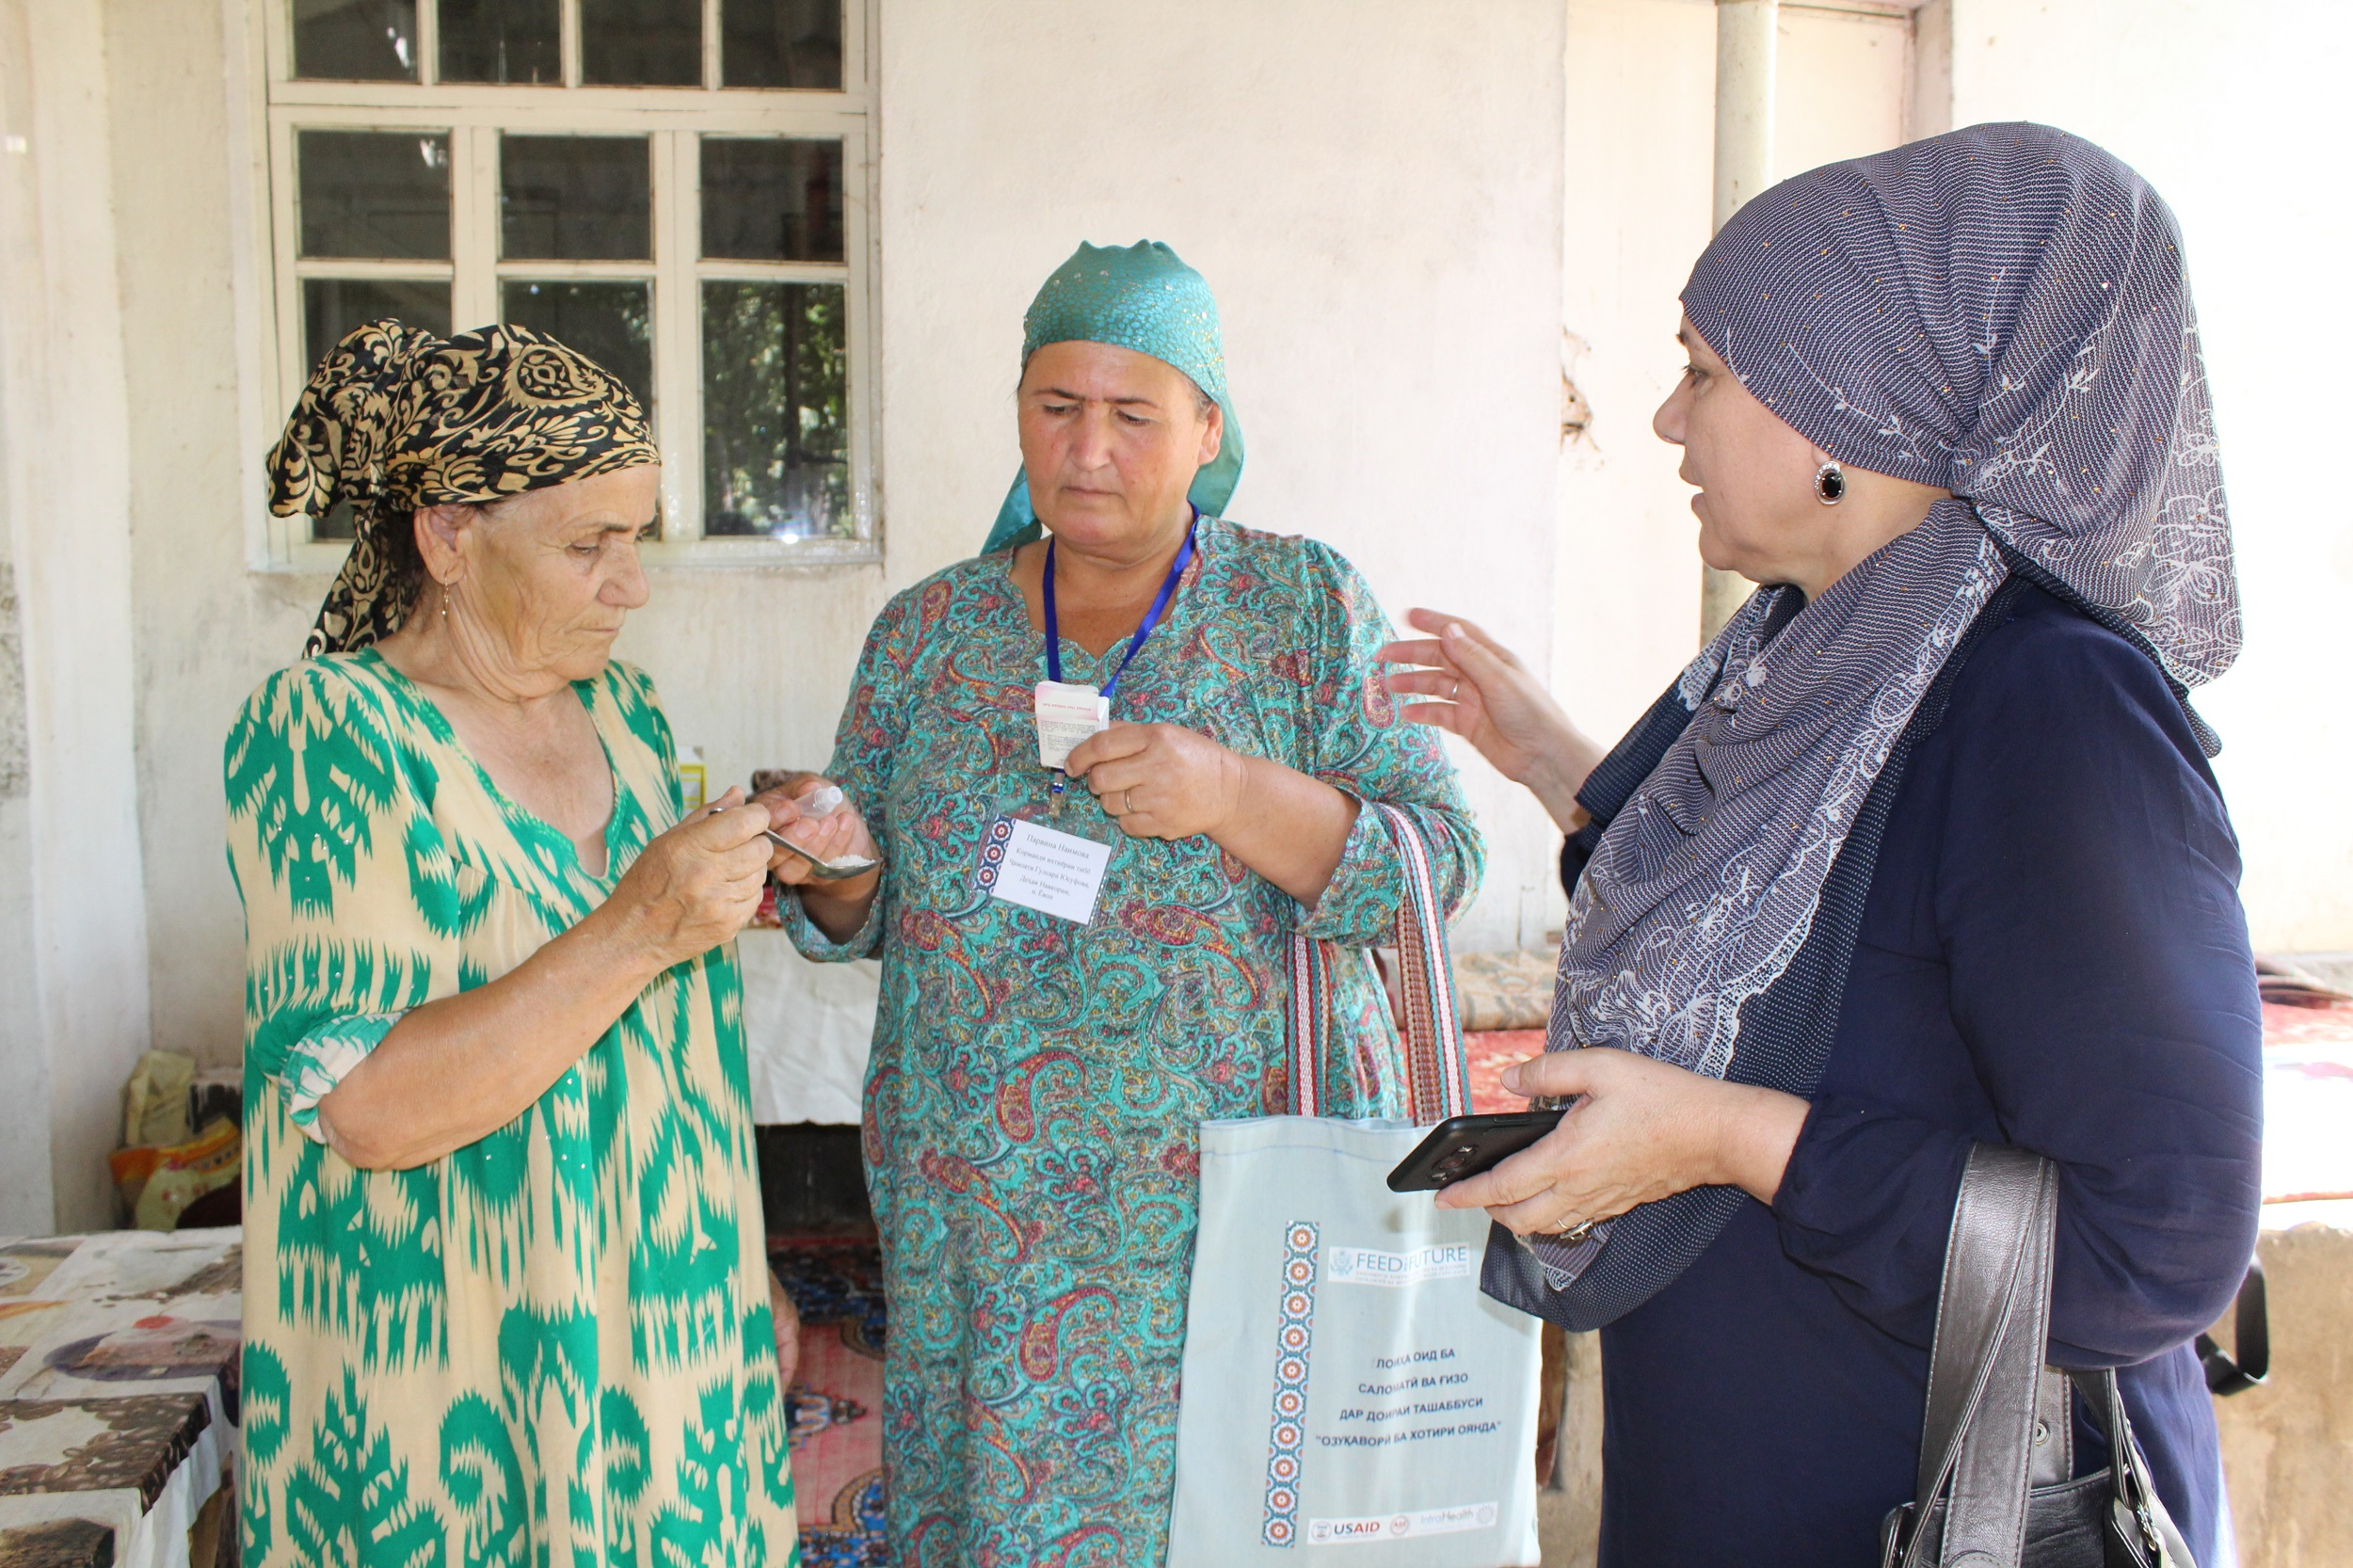 Community health volunteers work across maternal and child health, hygiene, agriculture, and advocacy in Tajikistan's Khatlon region. Photo courtesy of Tajikistan Health and Nutrition Activity.